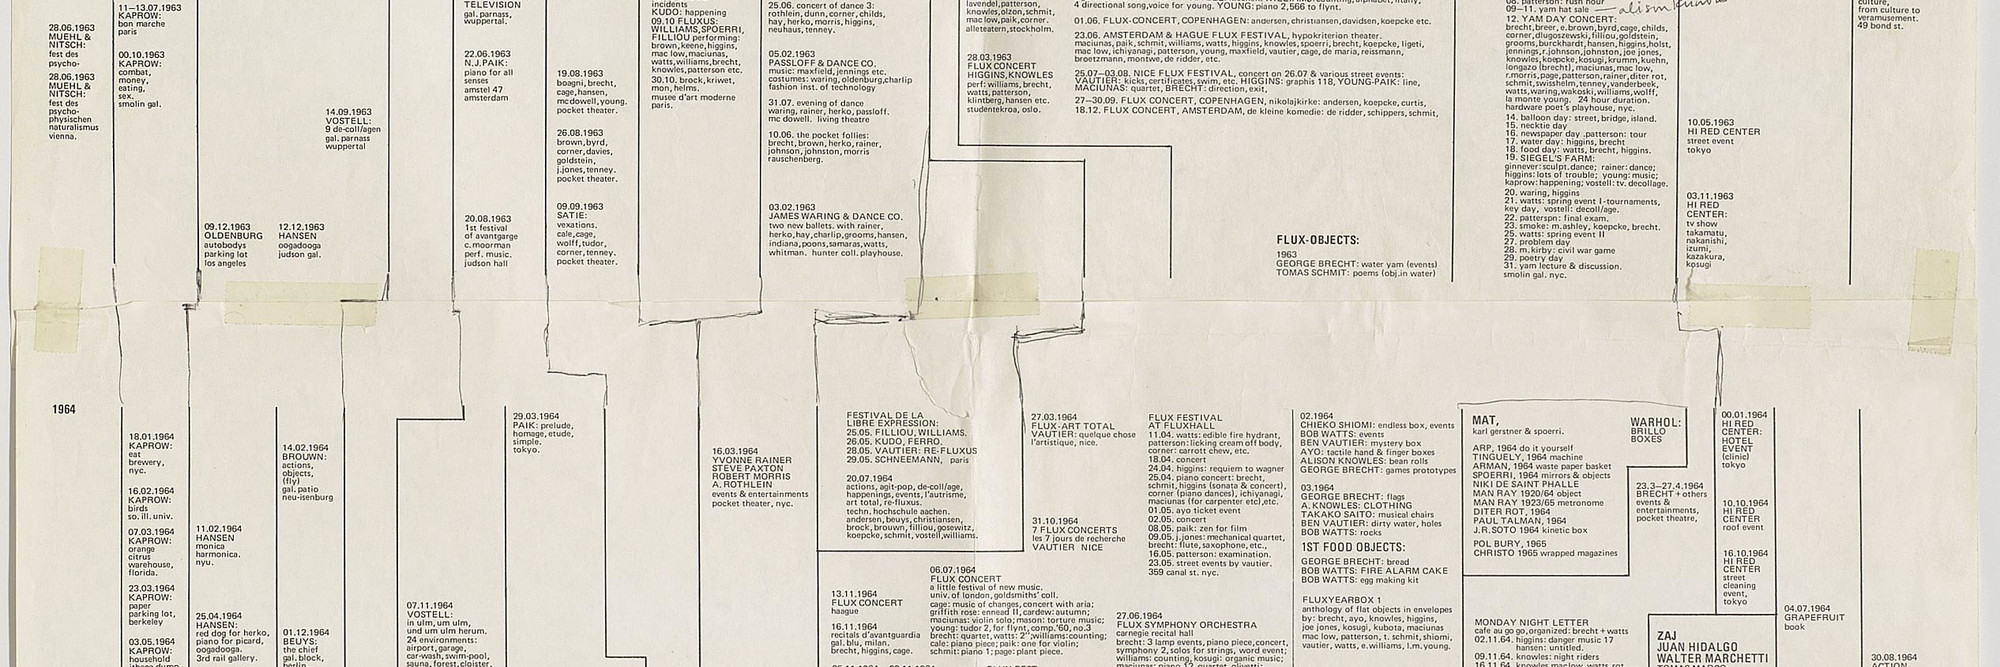 George Maciunas. Diagram of Historical Development of Fluxus and Other 4 Dimentional, Aural, Optic, Olfactory, Epithelial and Tactile Art Forms, annotated by Alison Knowles. 1973. Offset lithograph, 67 15/16 × 23 1/16″ (172.5 × 58.5 cm). Designer: George Maciunas. Publisher: Fluxus. The Gilbert and Lila Silverman Fluxus Collection Gift